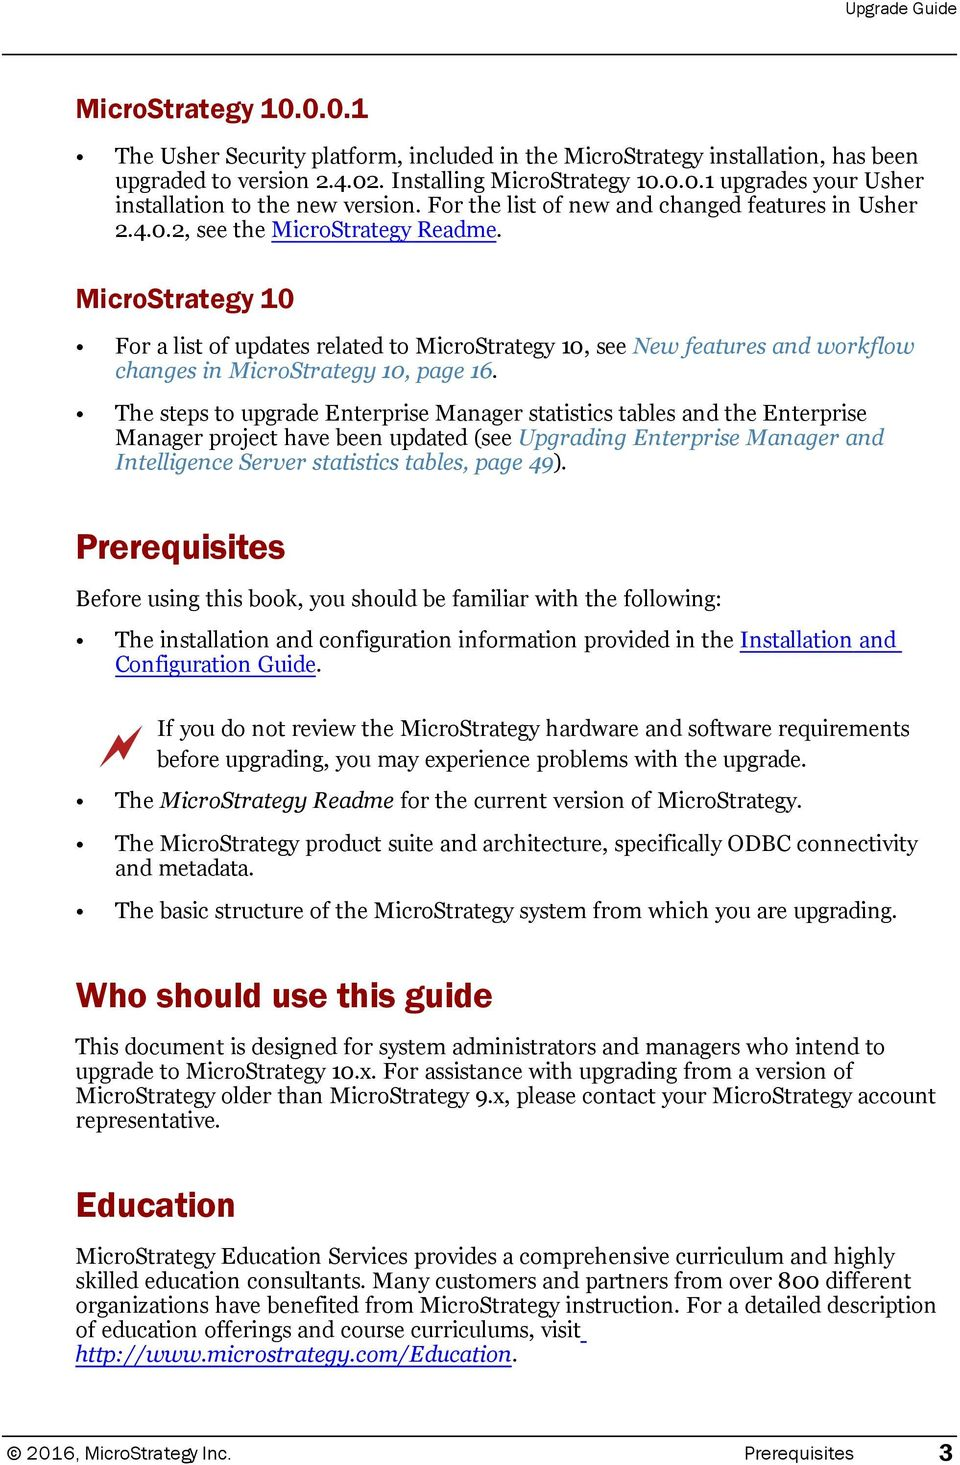 MicroStrategy 10 For a list of updates related to MicroStrategy 10, see New features and workflow changes in MicroStrategy 10, page 16.